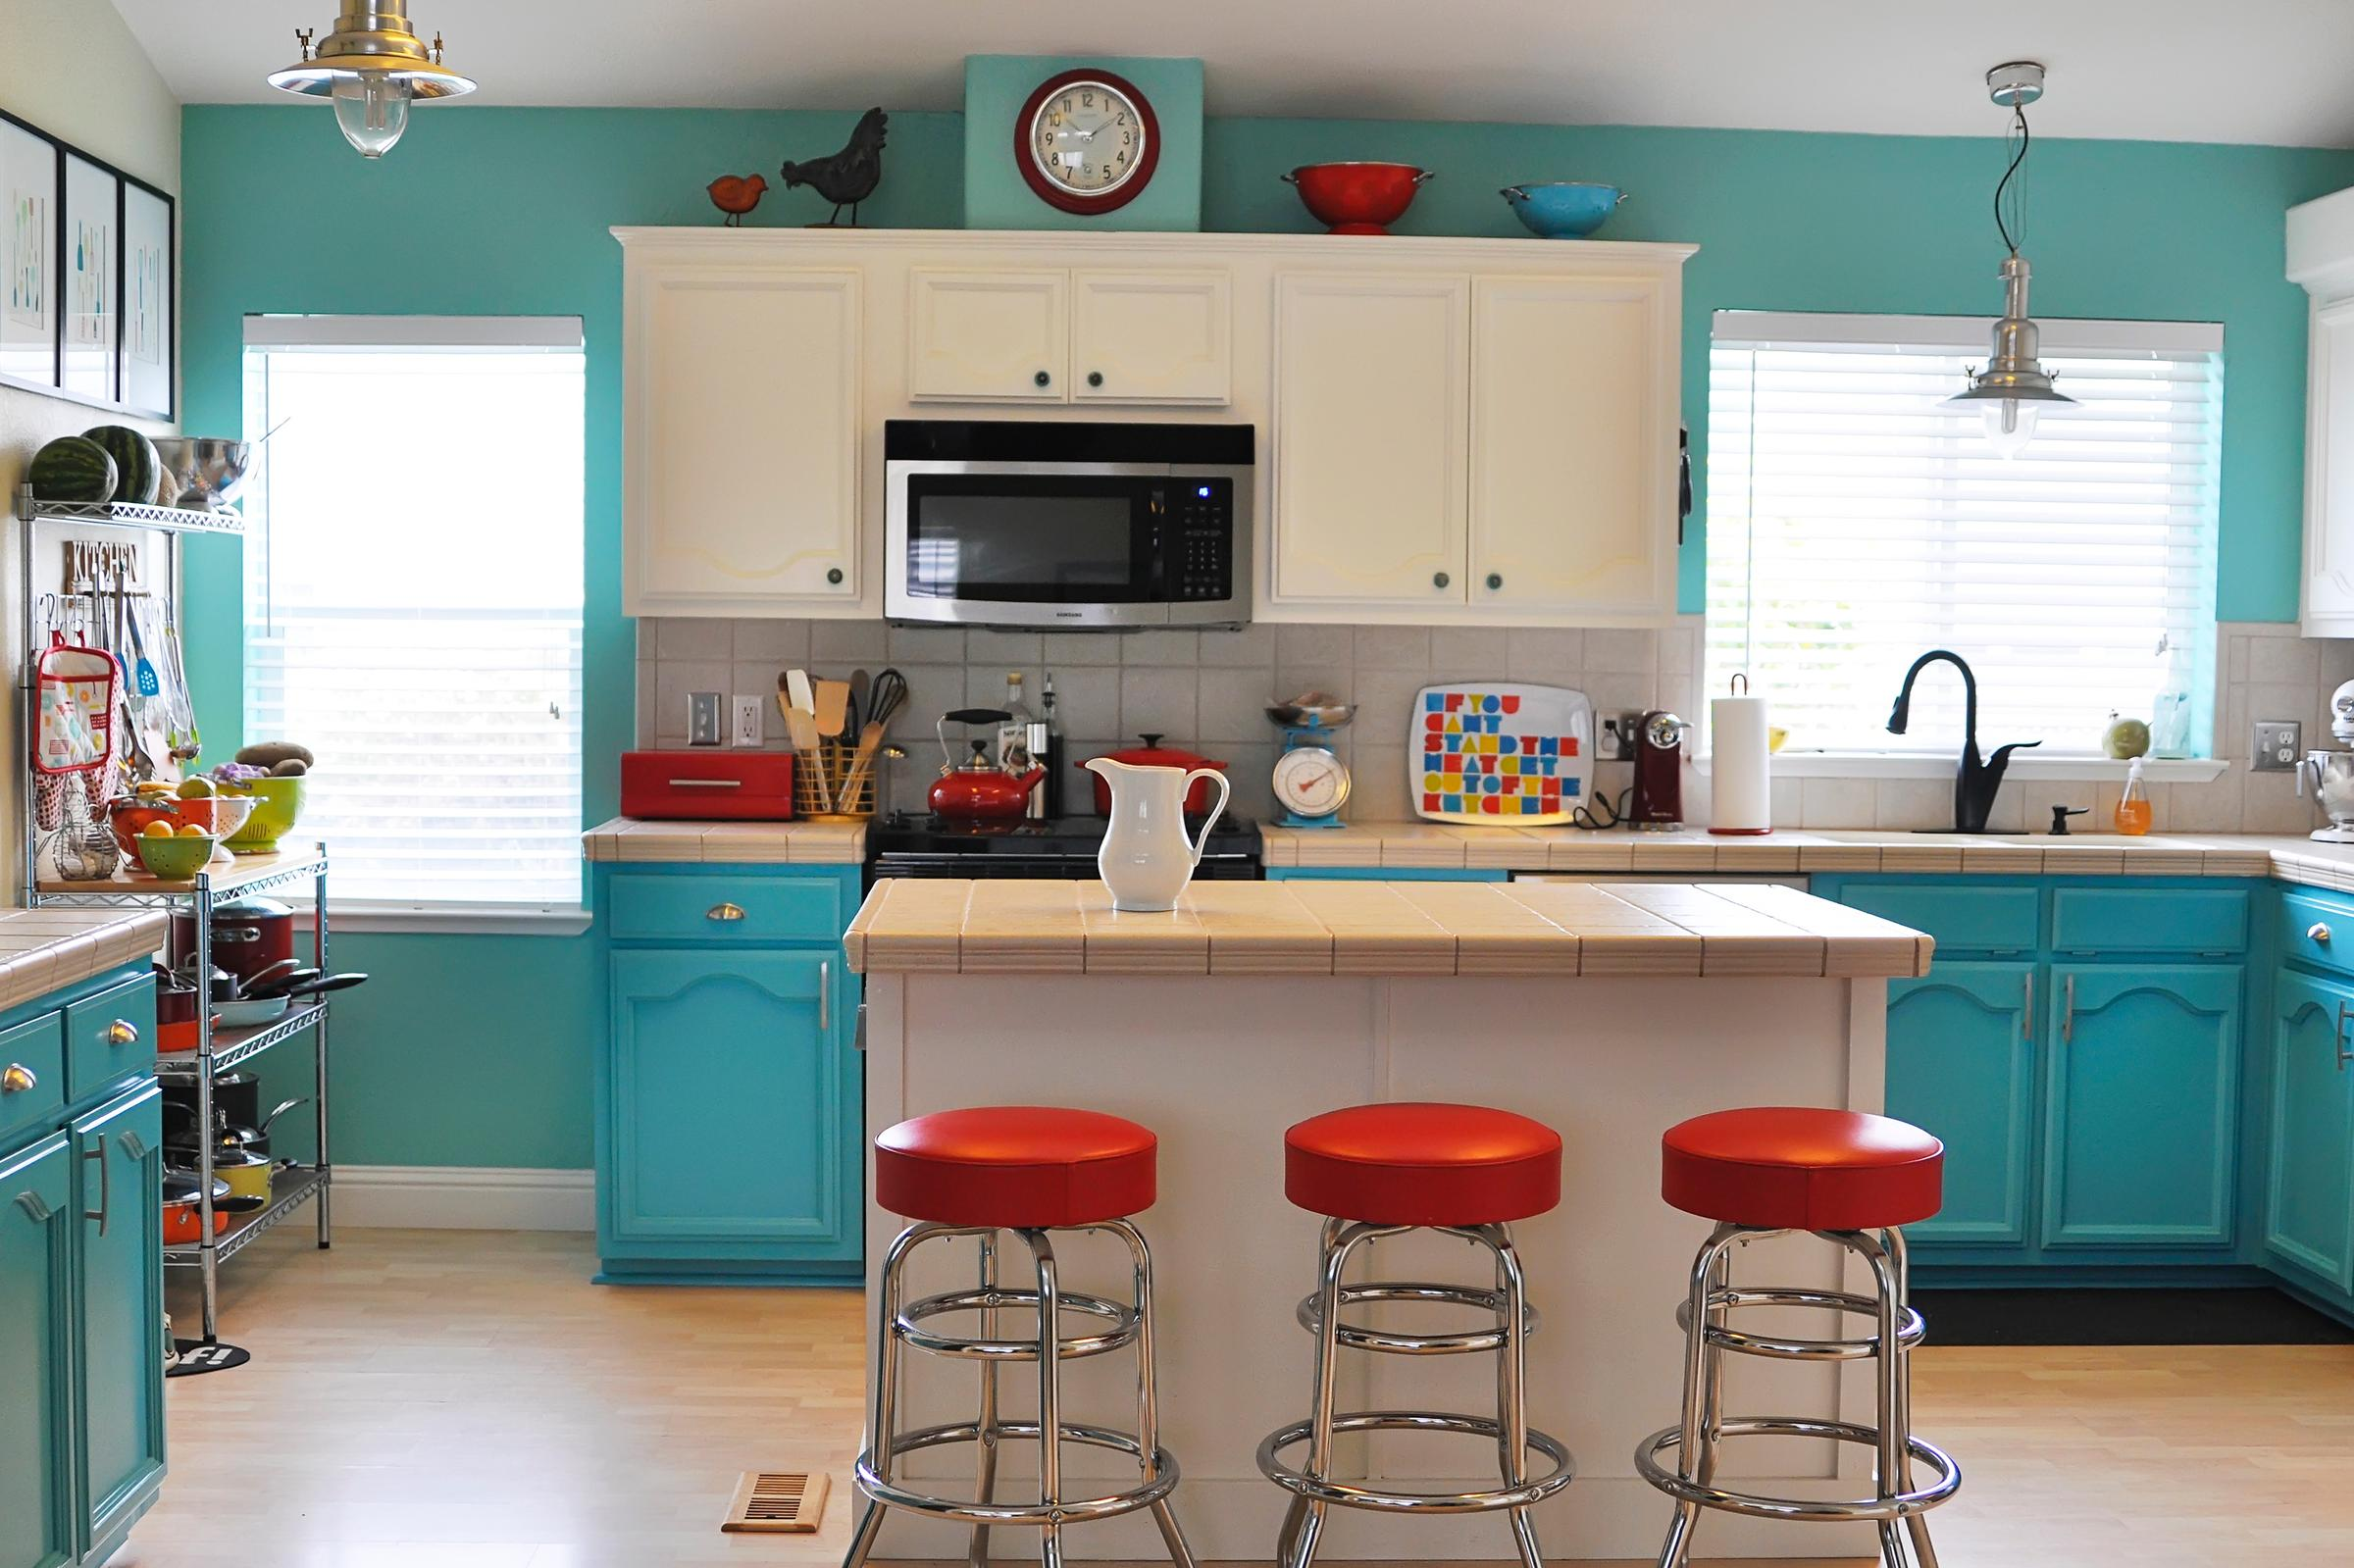 Kitchen Remodeling Decisions You'll Never Regret